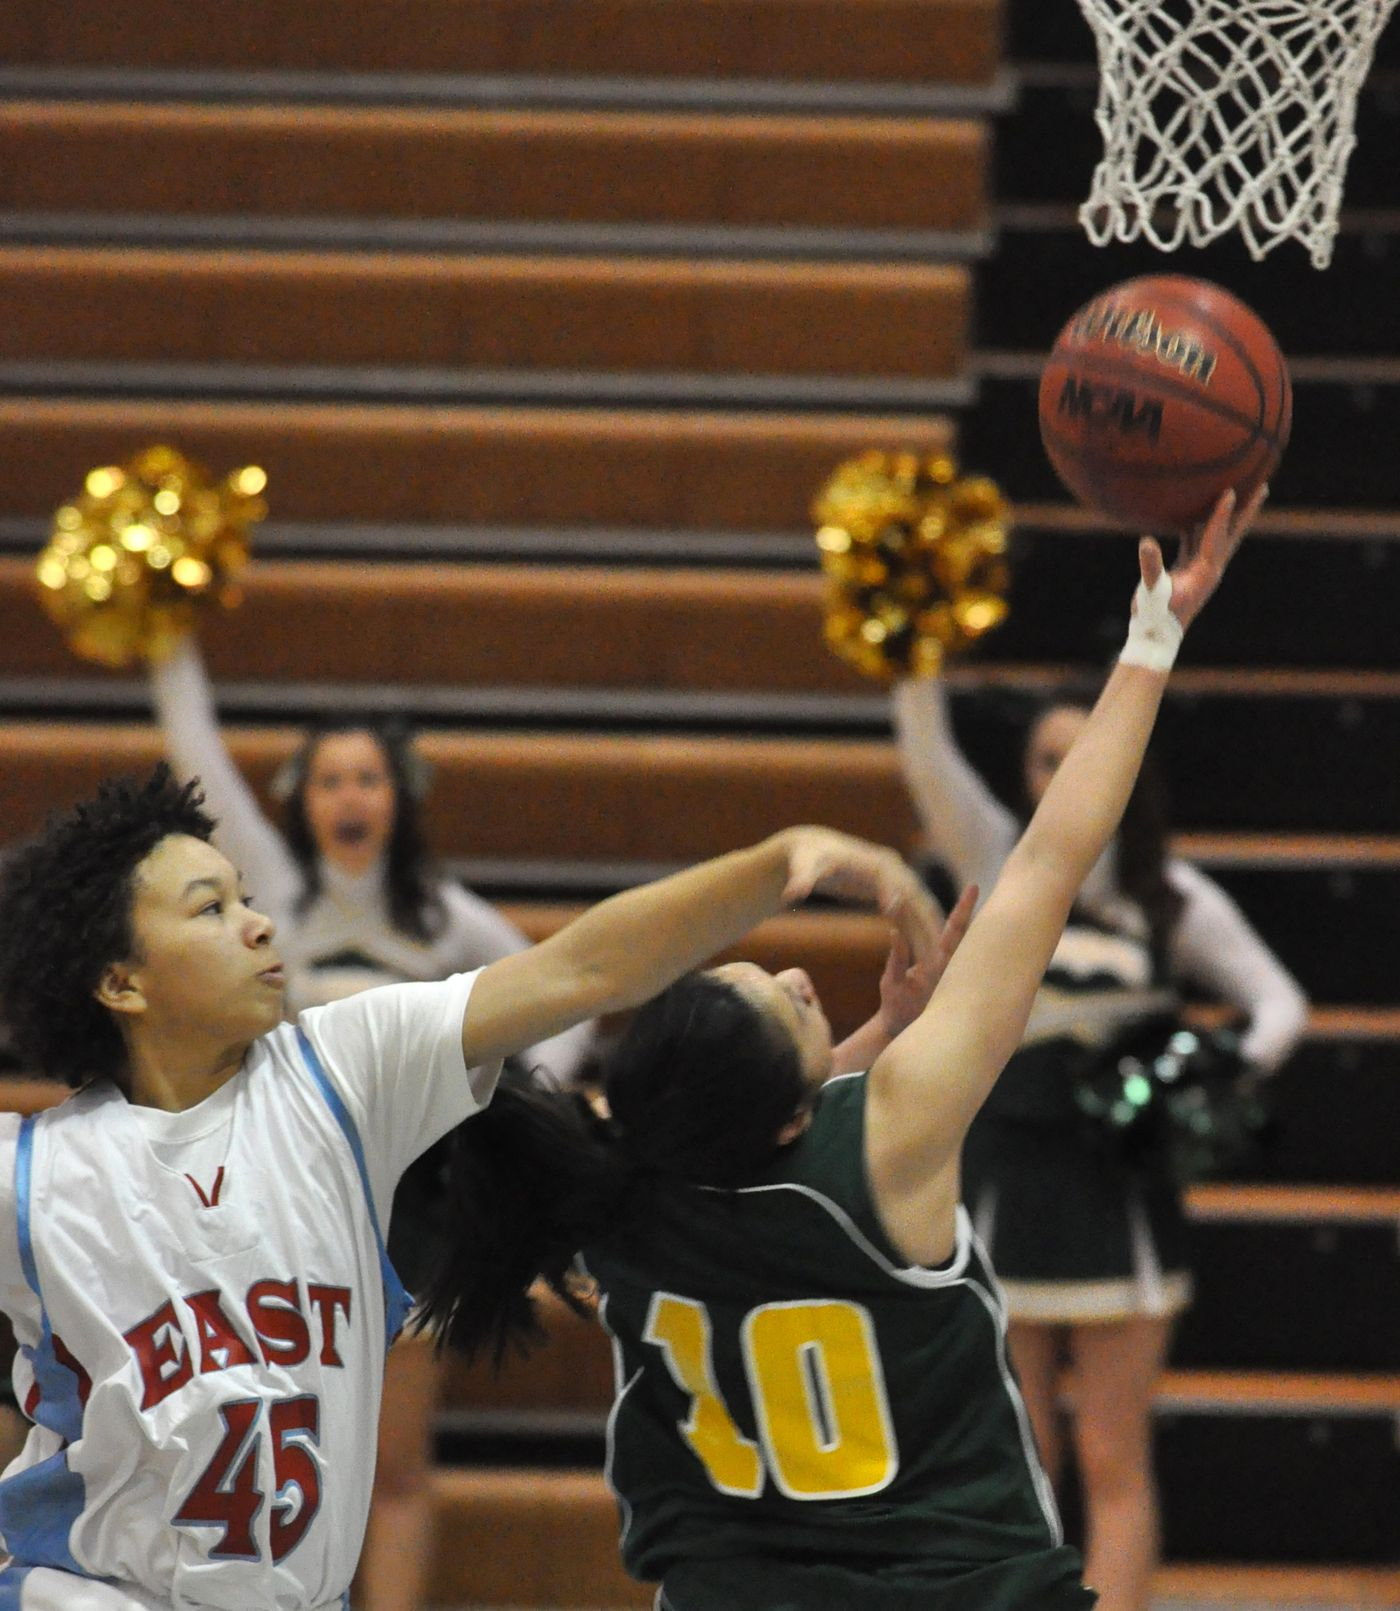 Dajonee Hale of East High reaches over as Krysta Sumabat Service goes up for the shot during the first half of girls Basketball action at East High on Wednesday January 21, 2009. (Bob Hallinen / ADN)